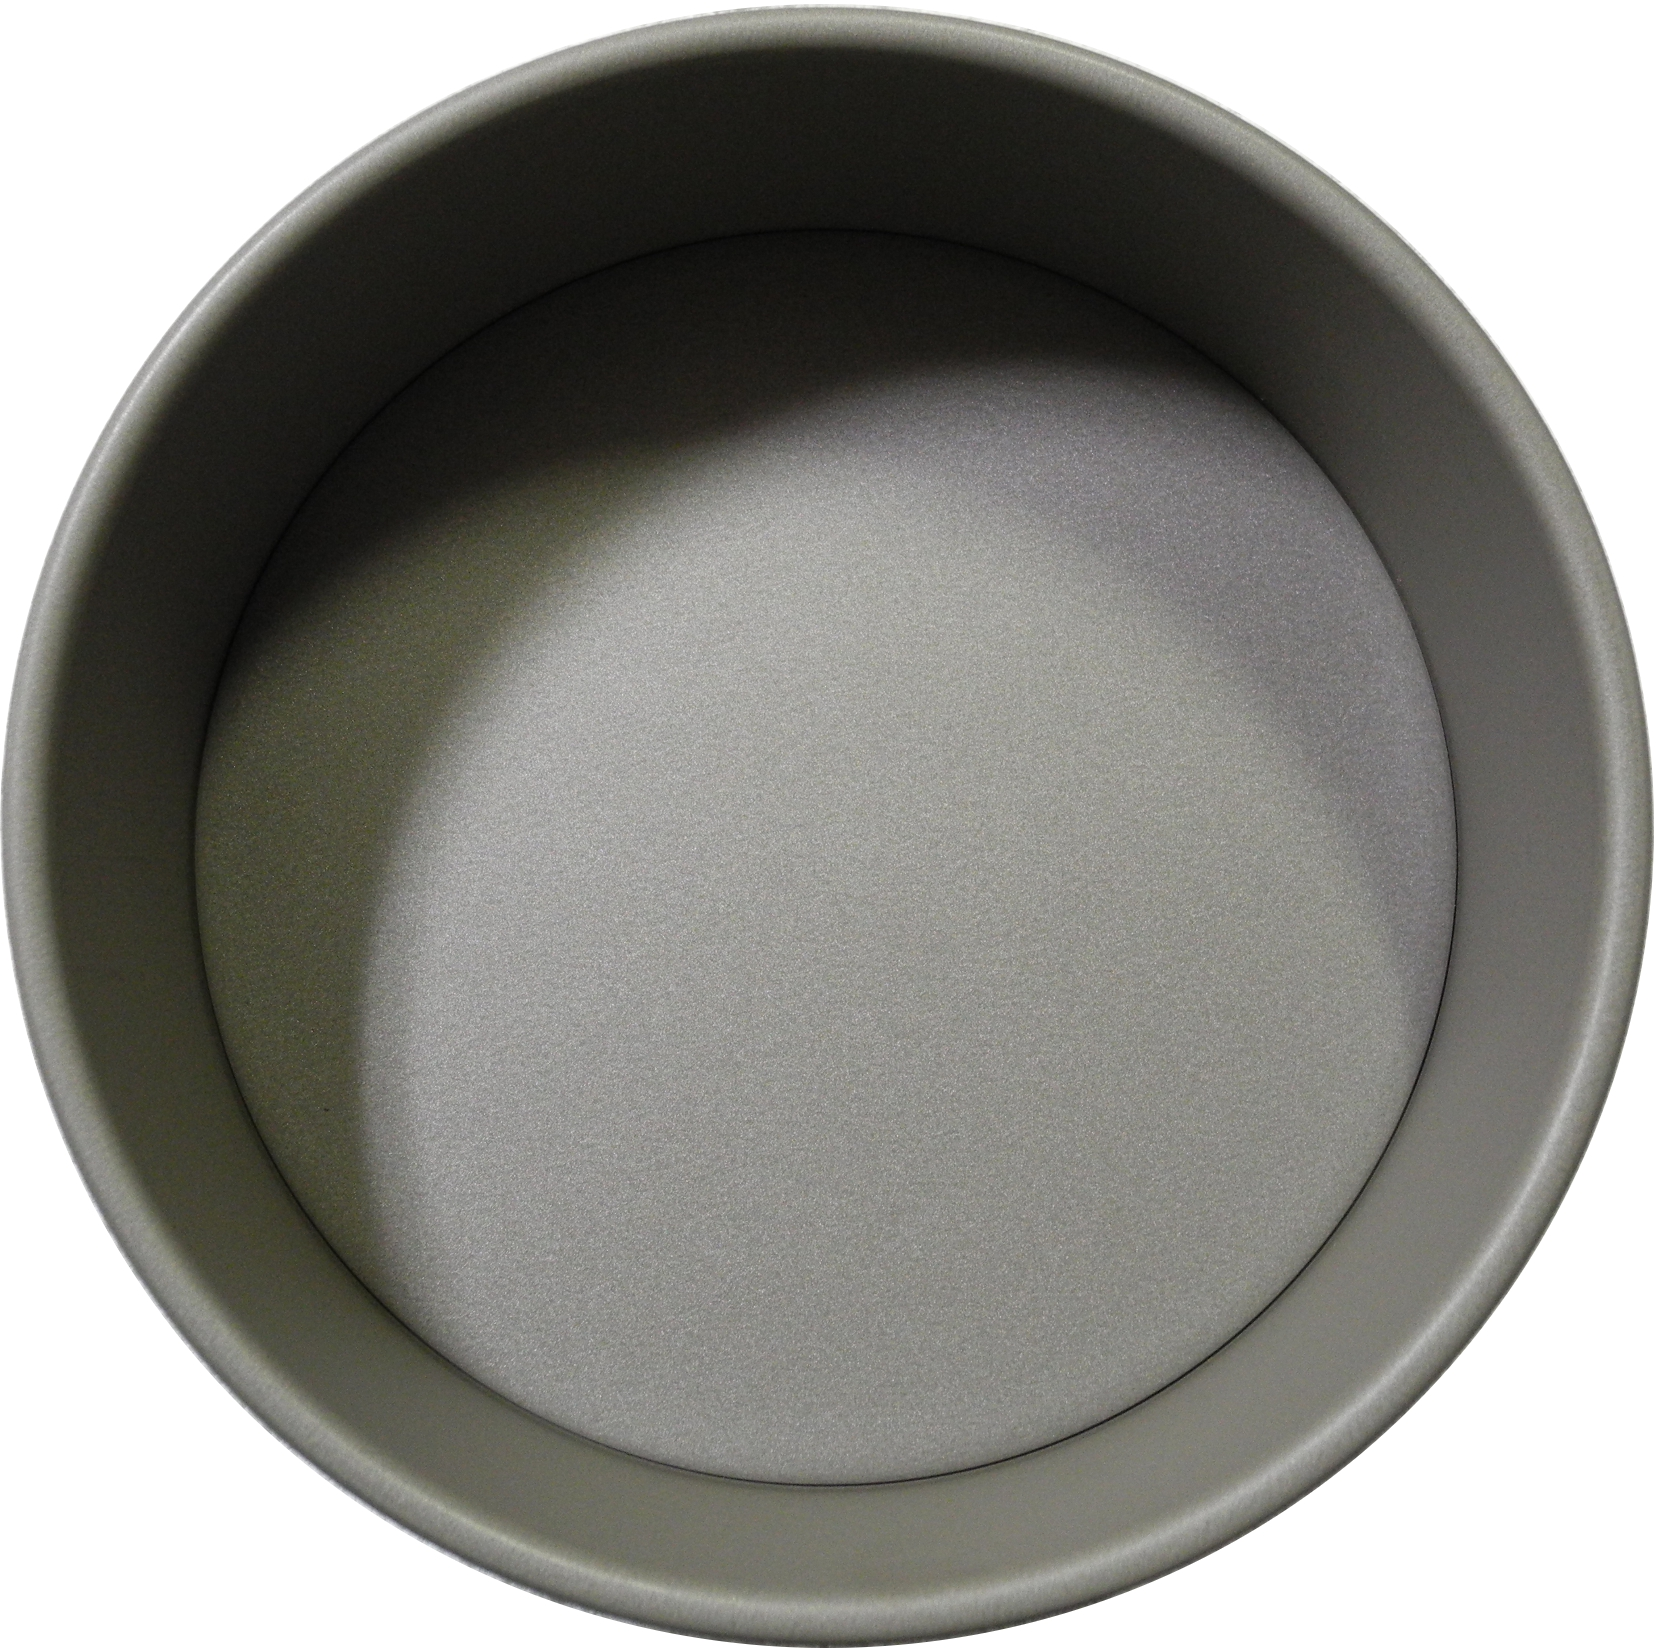 Cake Tin In Next Day Delivery